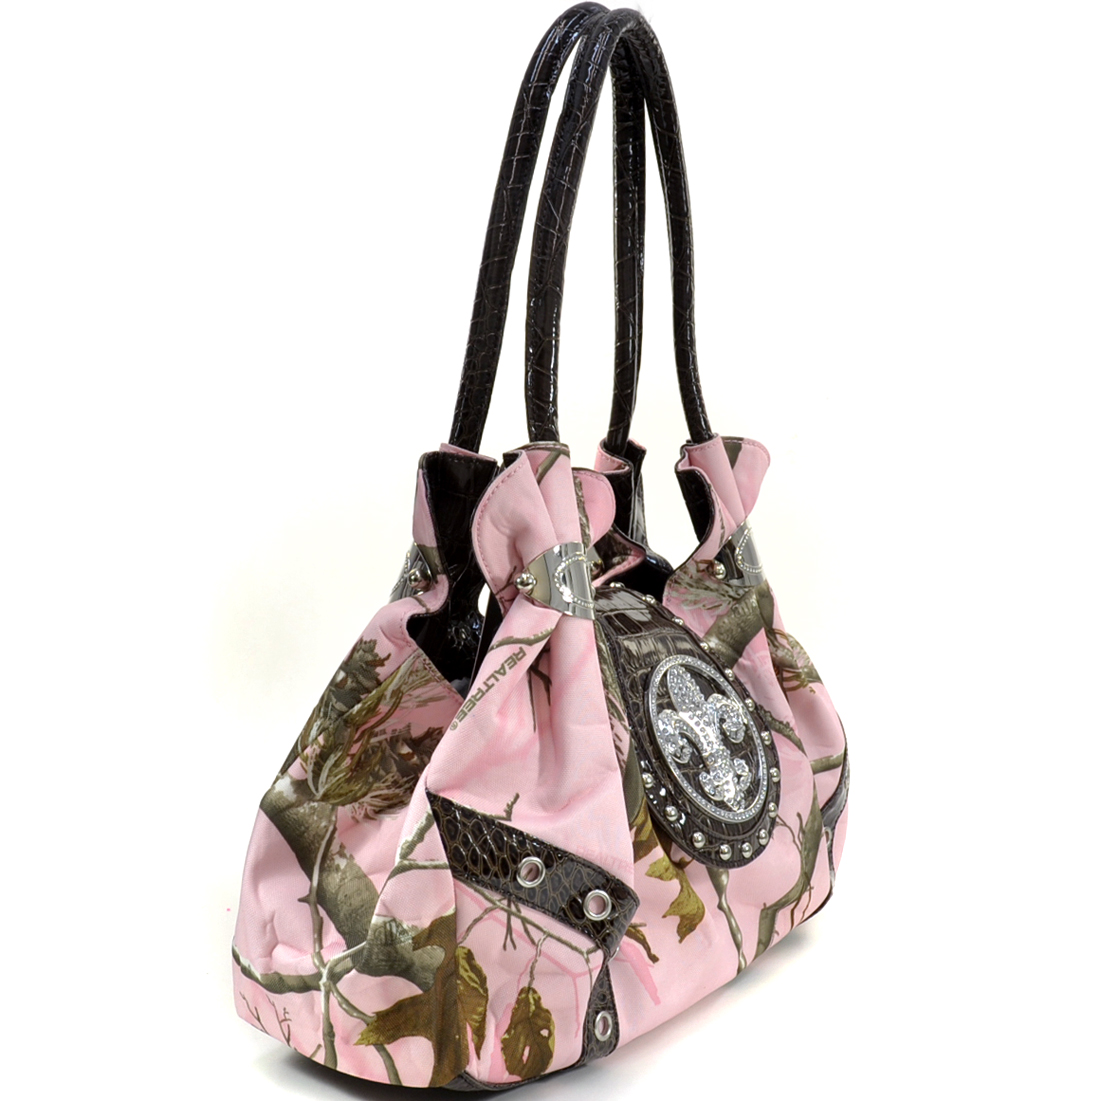 Realtree ® Studded Camouflage Satchel Bag with Rhinestone Fleur De Lis - Camouflage/Pink